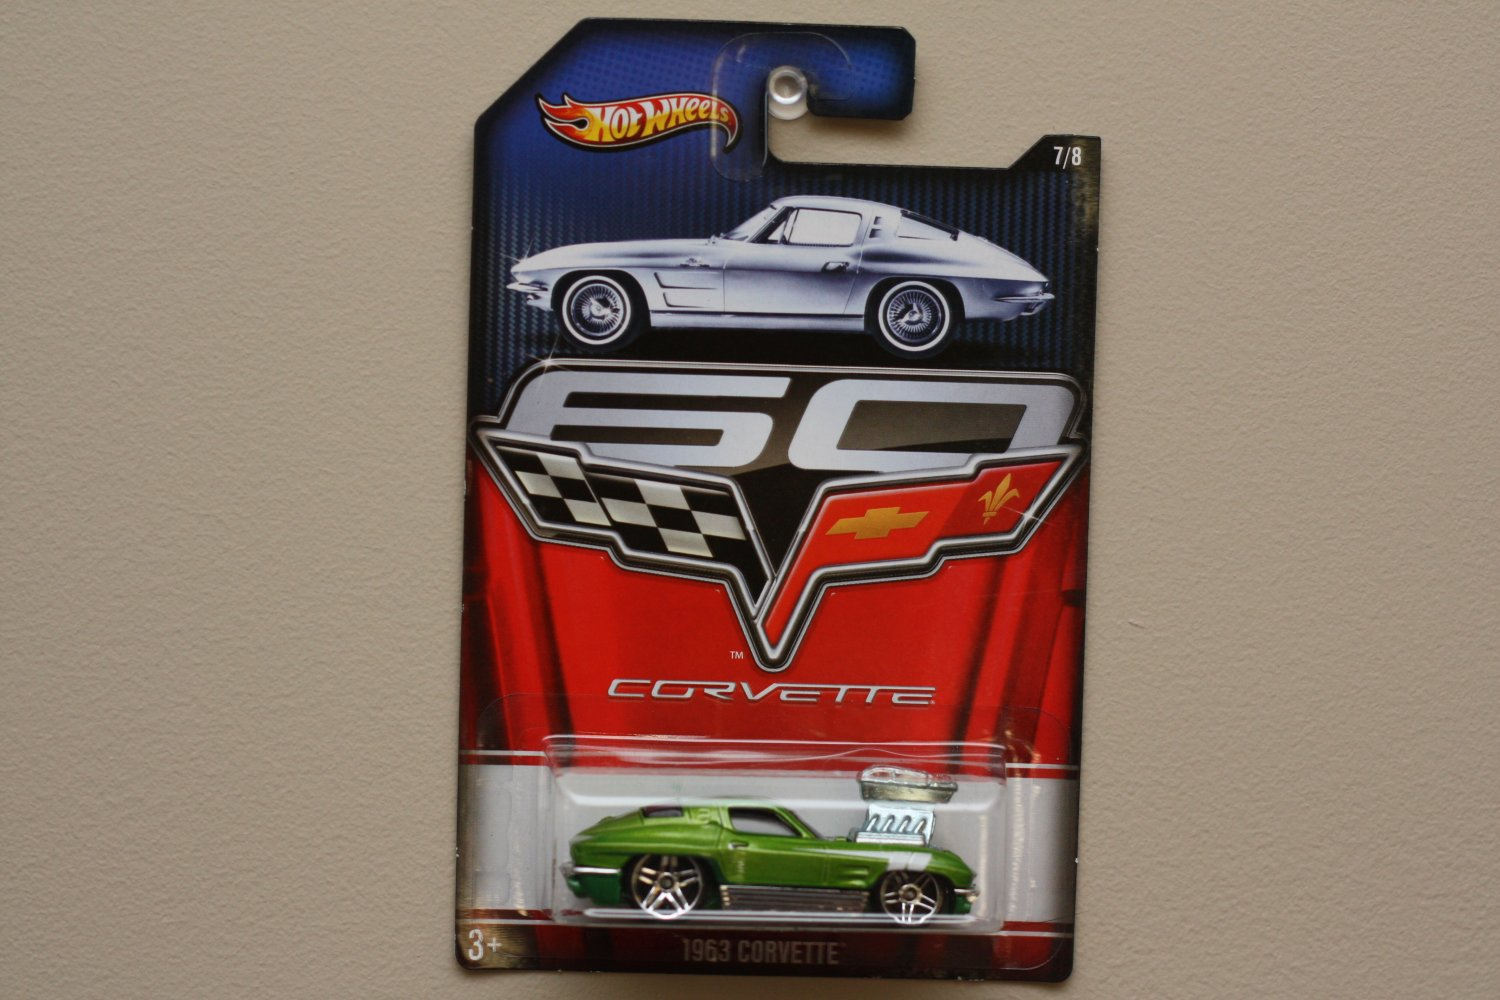 Hot Wheels 2013 Corvette 60th Anniversary 1963 Corvette (Tooned)